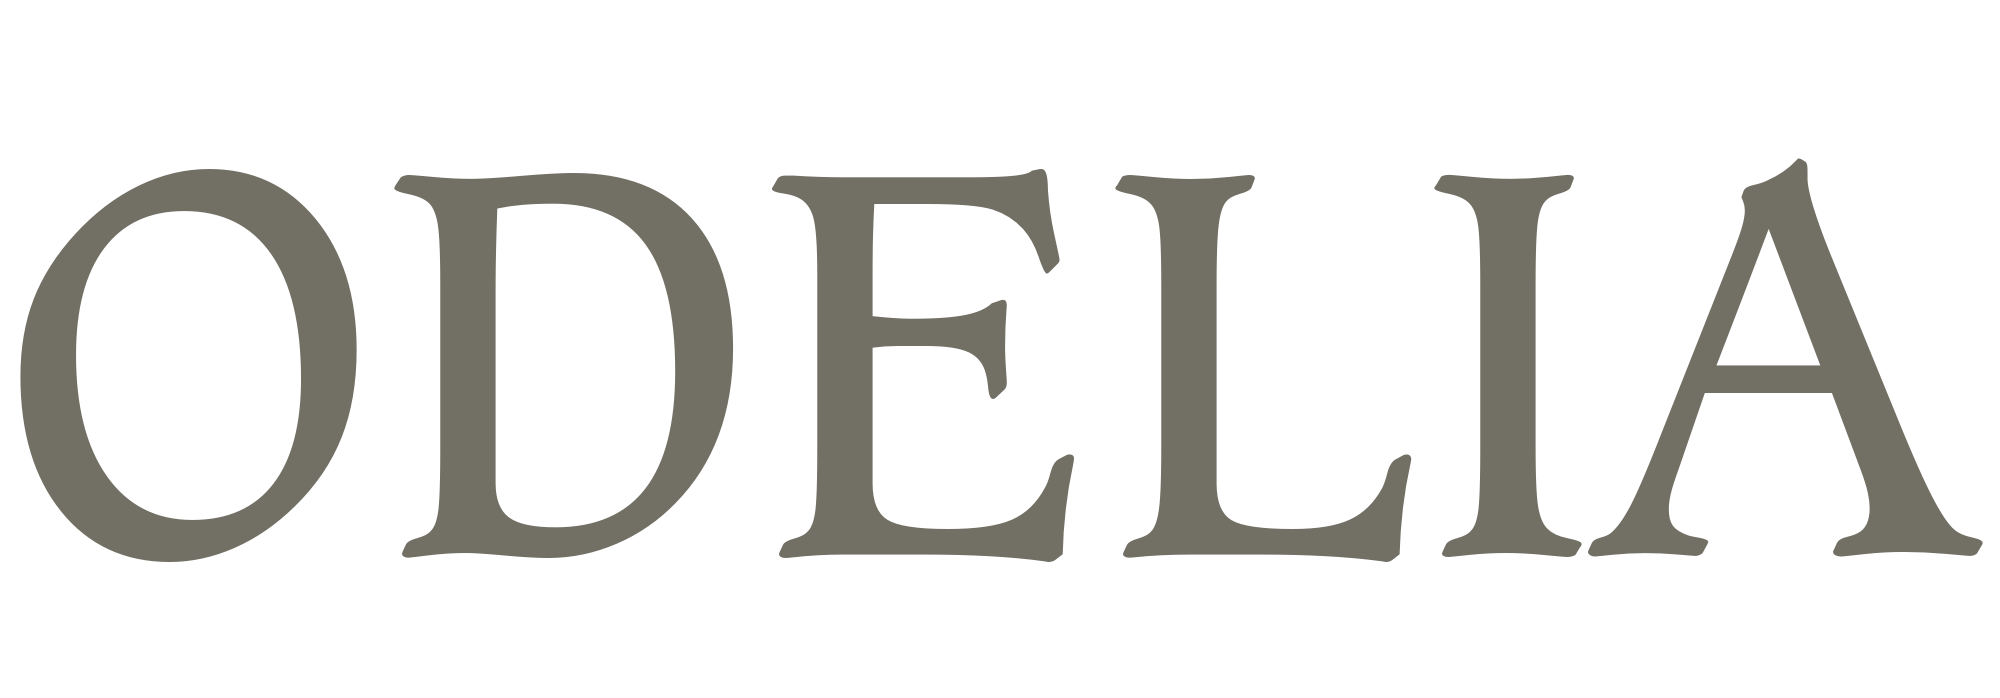 Odelia - Name's Meaning of Odelia